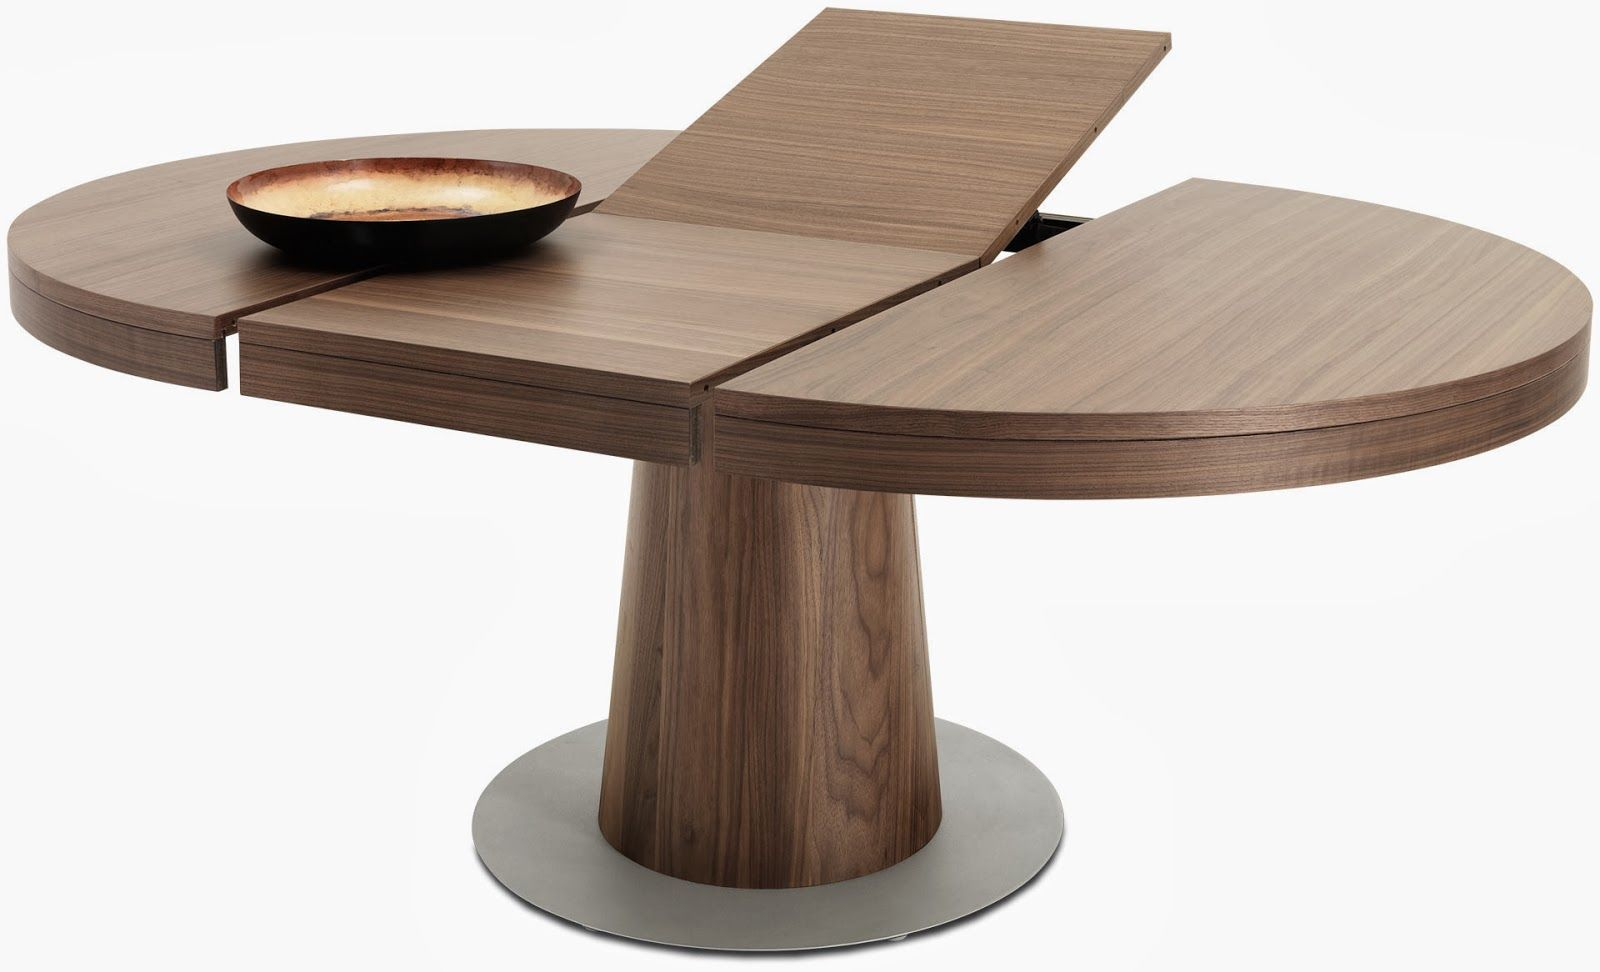 Studio Annetta Bo Concept Danish Design In Hk Round Extendable Dining Table Dining Table Circle Dining Table